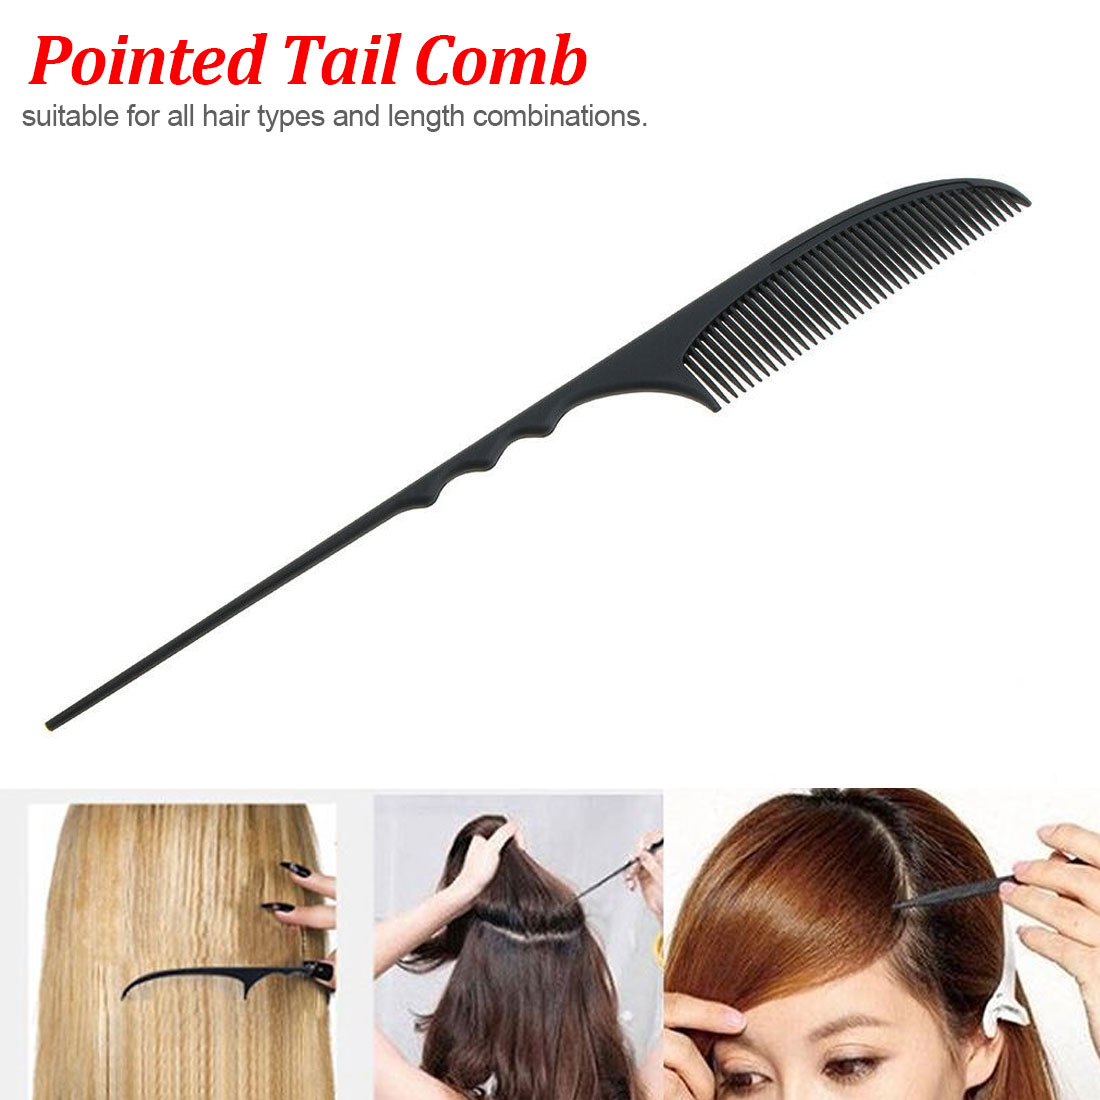 Pointed Tail Comb Clip Design Brush Tools Hair Pointed Tail Hairdressing Styling Comb Nice Type Hairbrush Carbon fiber Tools